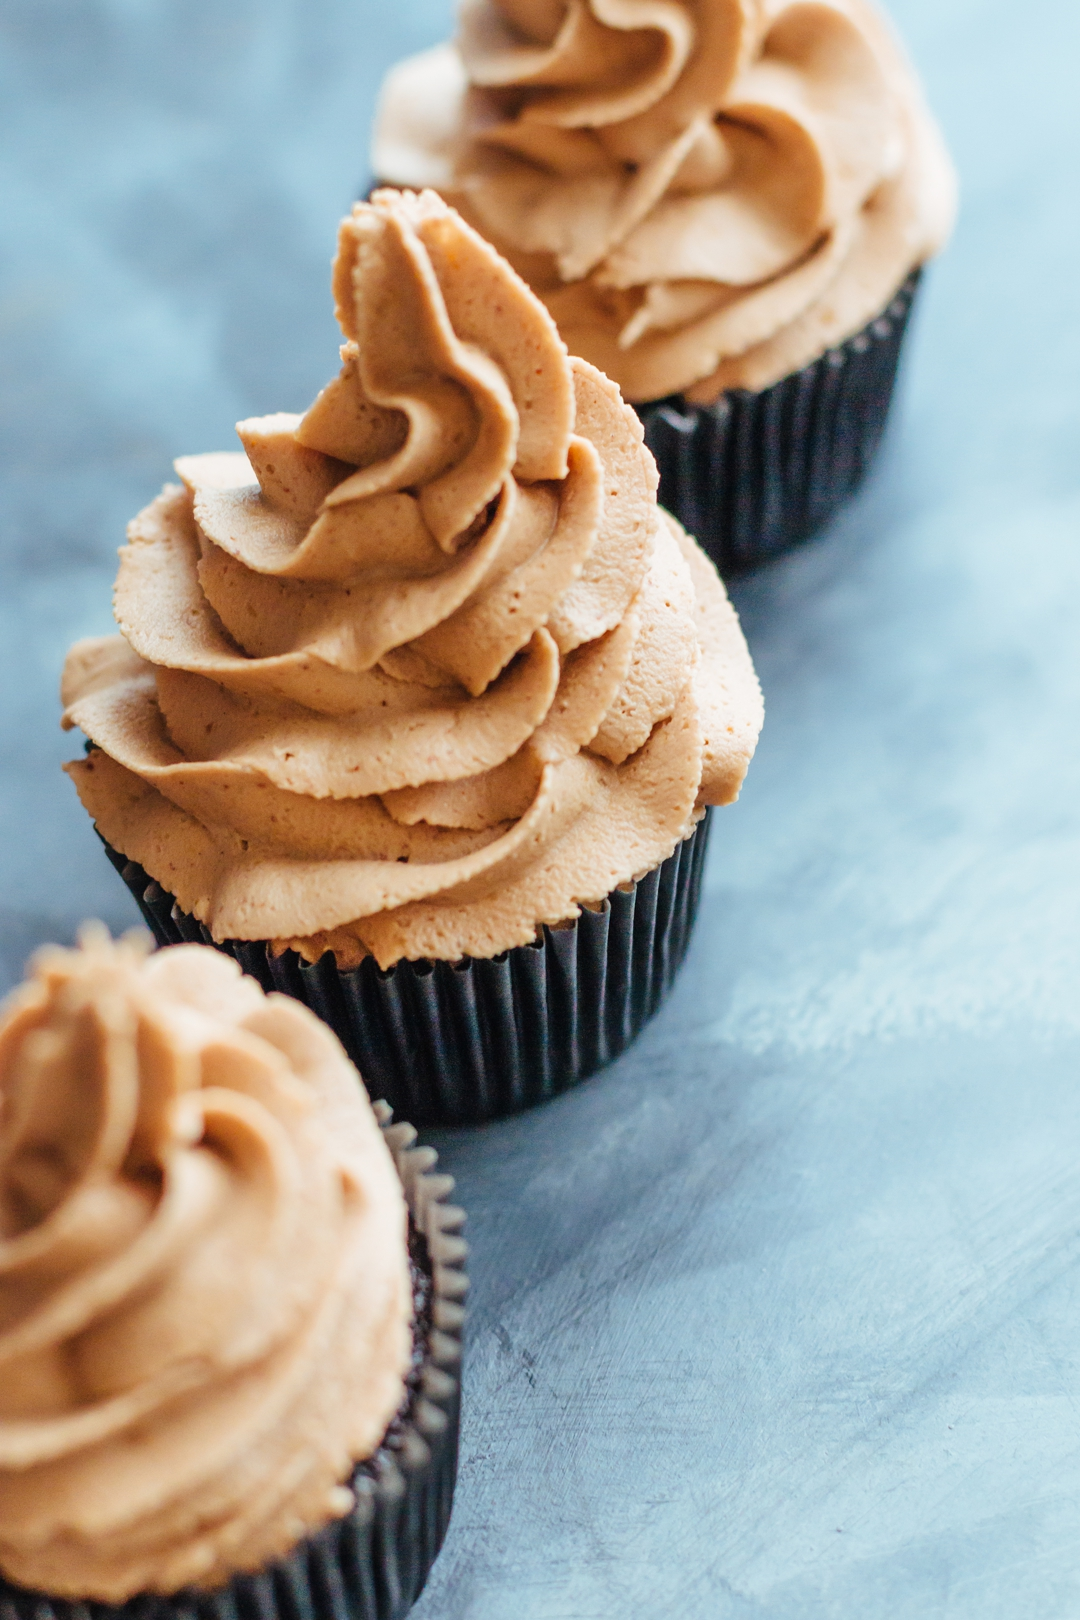 Angled vertical shot of three cupcakes topped with frosting.